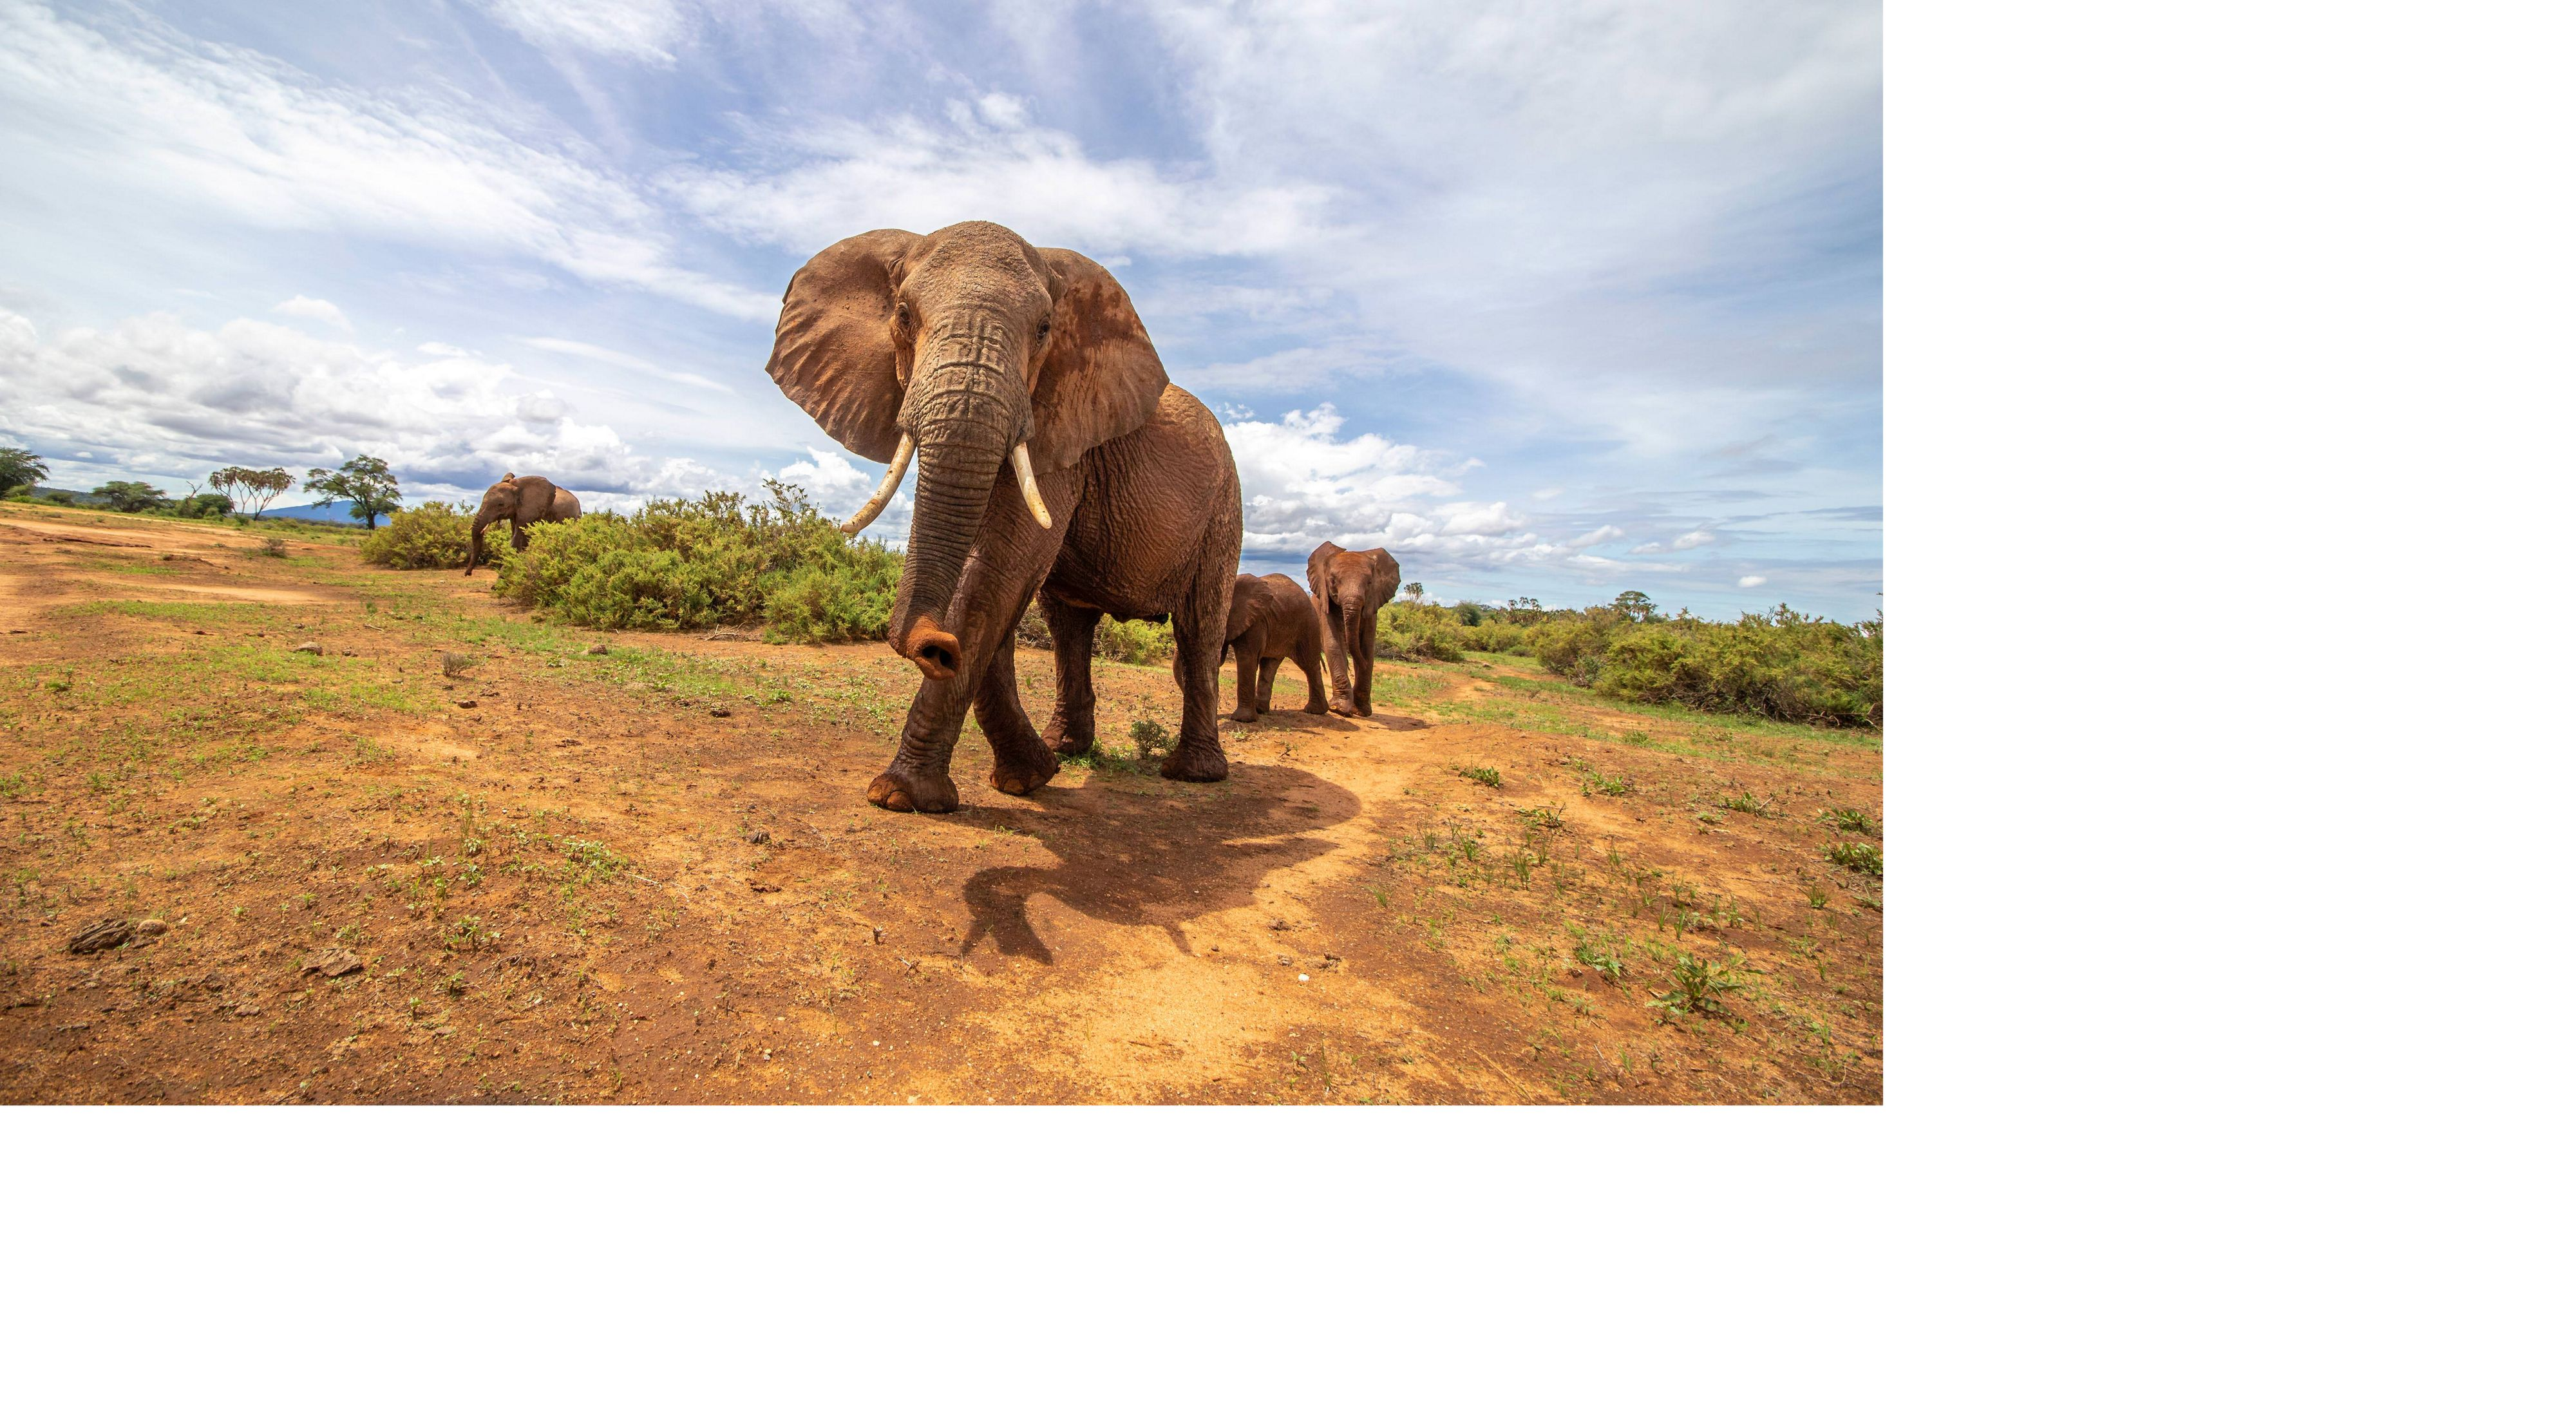 Elephants walk across grasslands